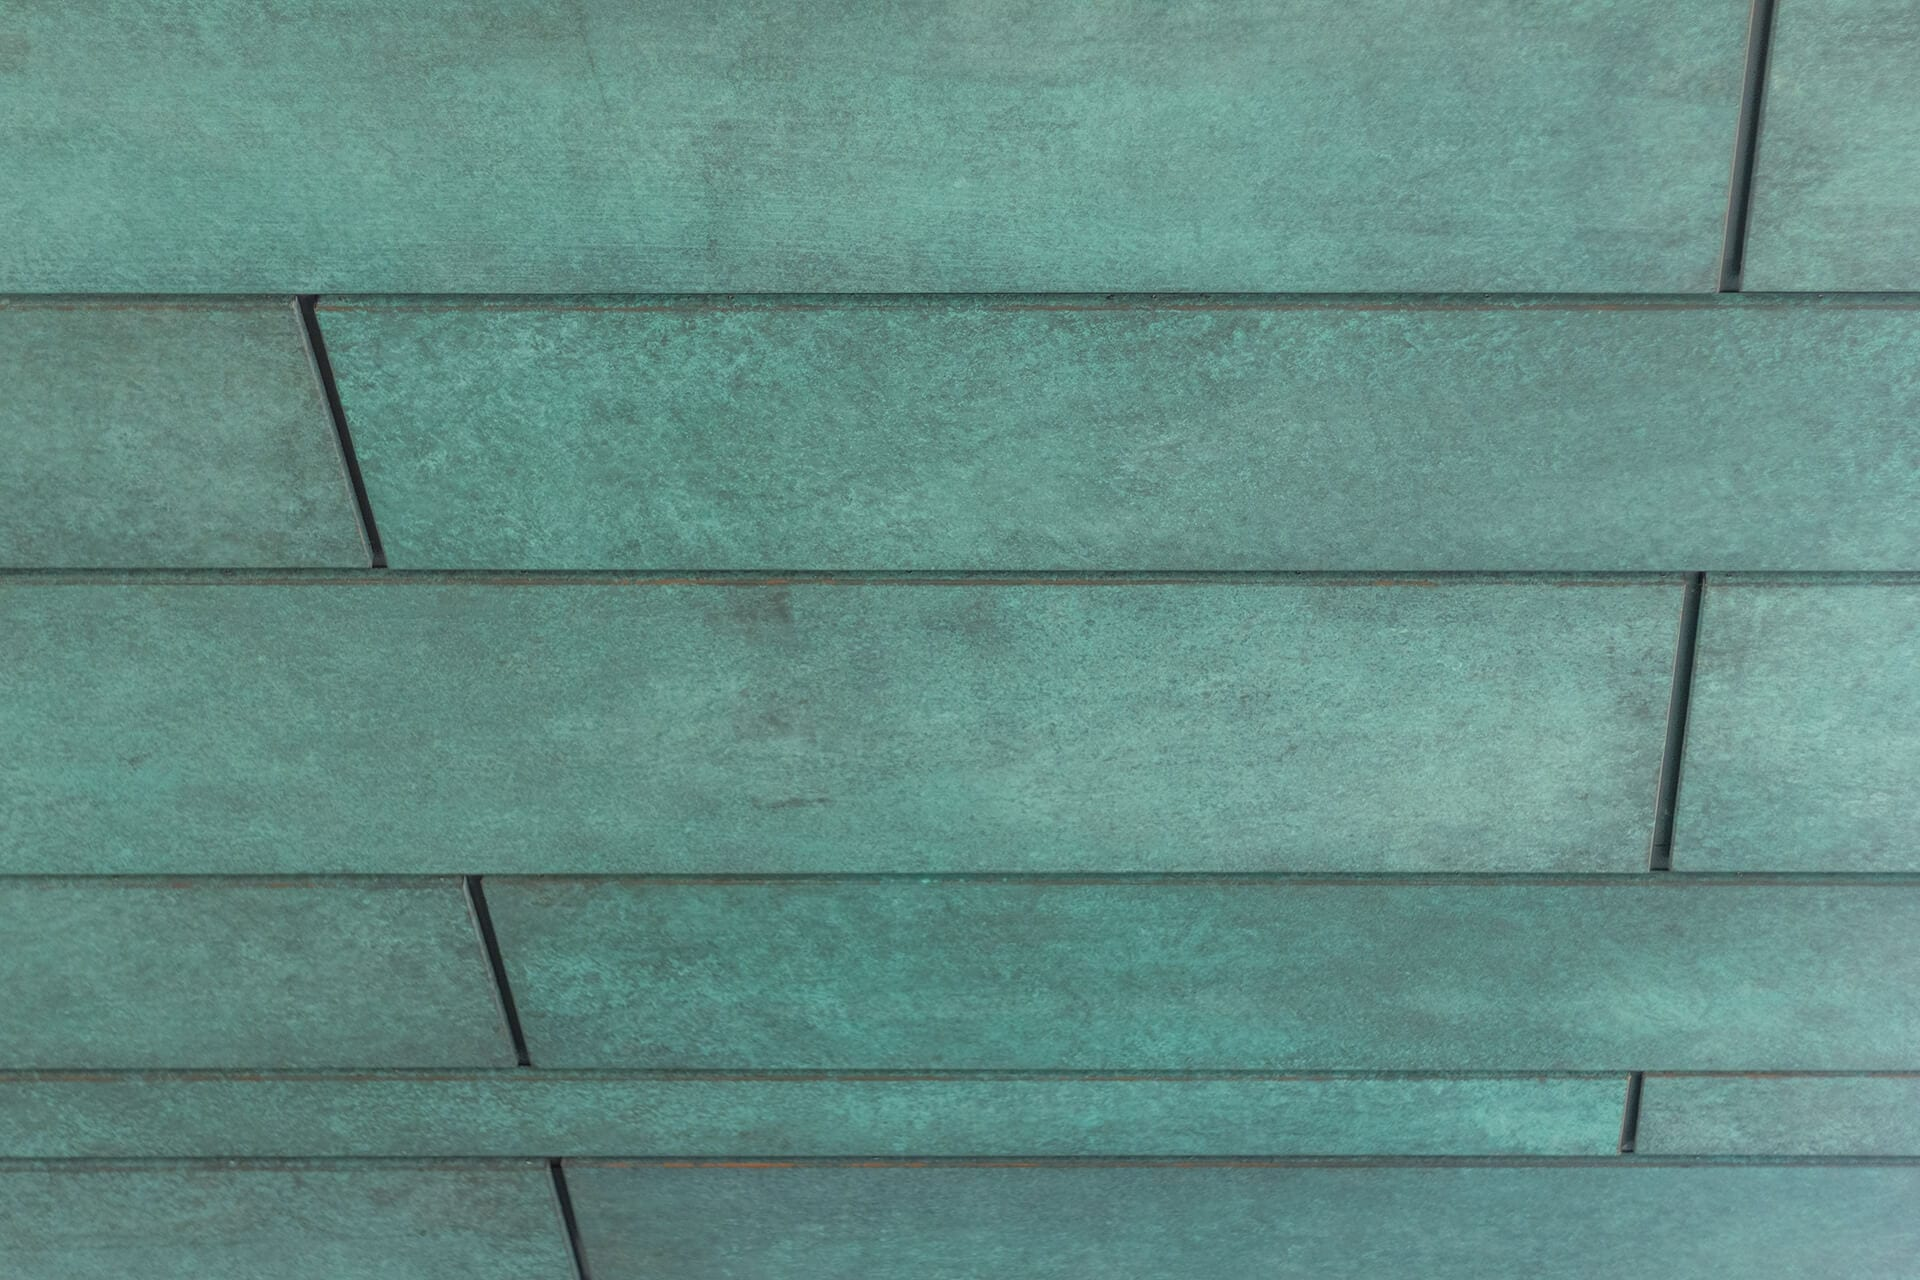 Columbus Museum of Art, detail of the custom copper soffit.